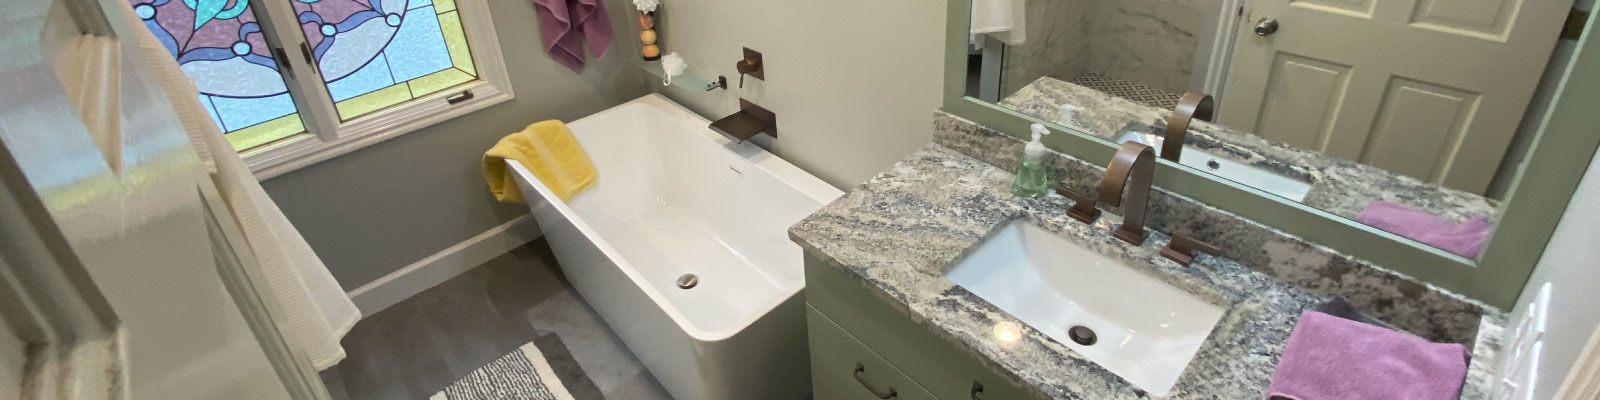 Bathroom Remodeling Utah Utah Bathroom Remodeling  3 Day Kitchen & Bath